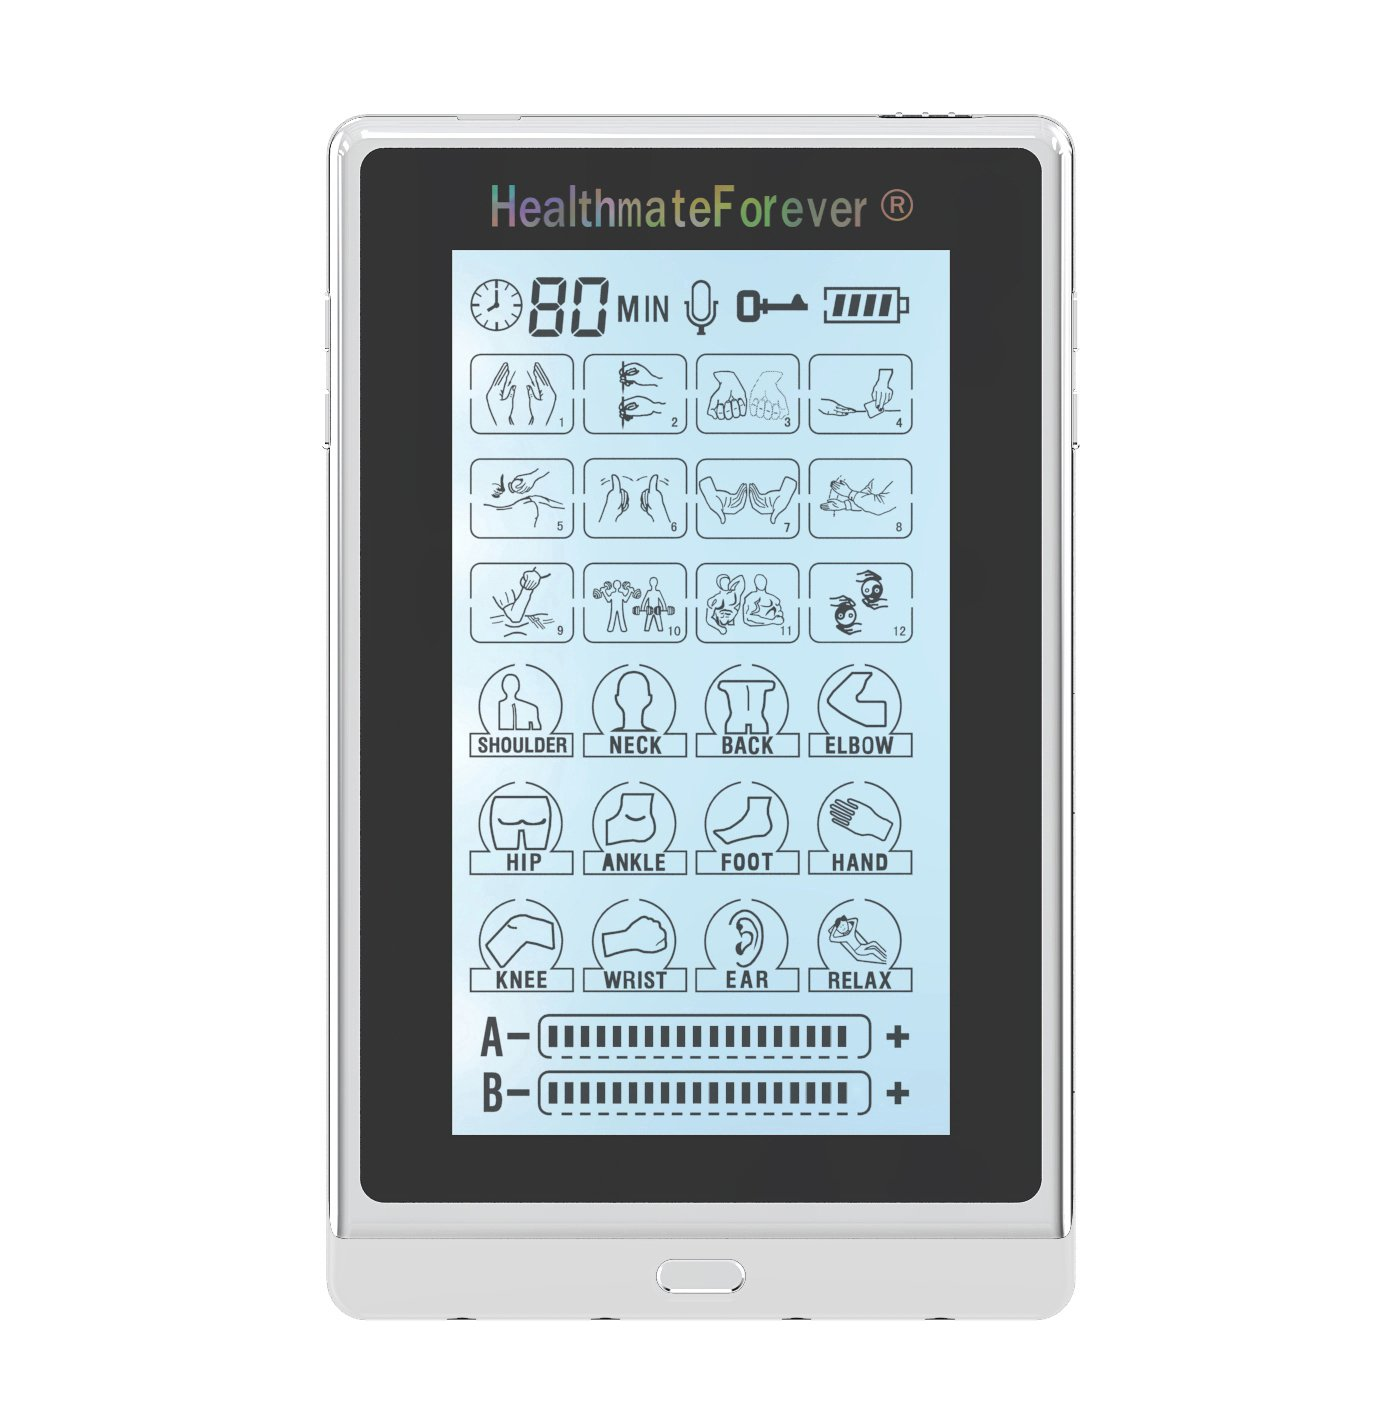 T24AB3 HealthmateForever TENS Unit Electrical Muscle Stimulator Silver